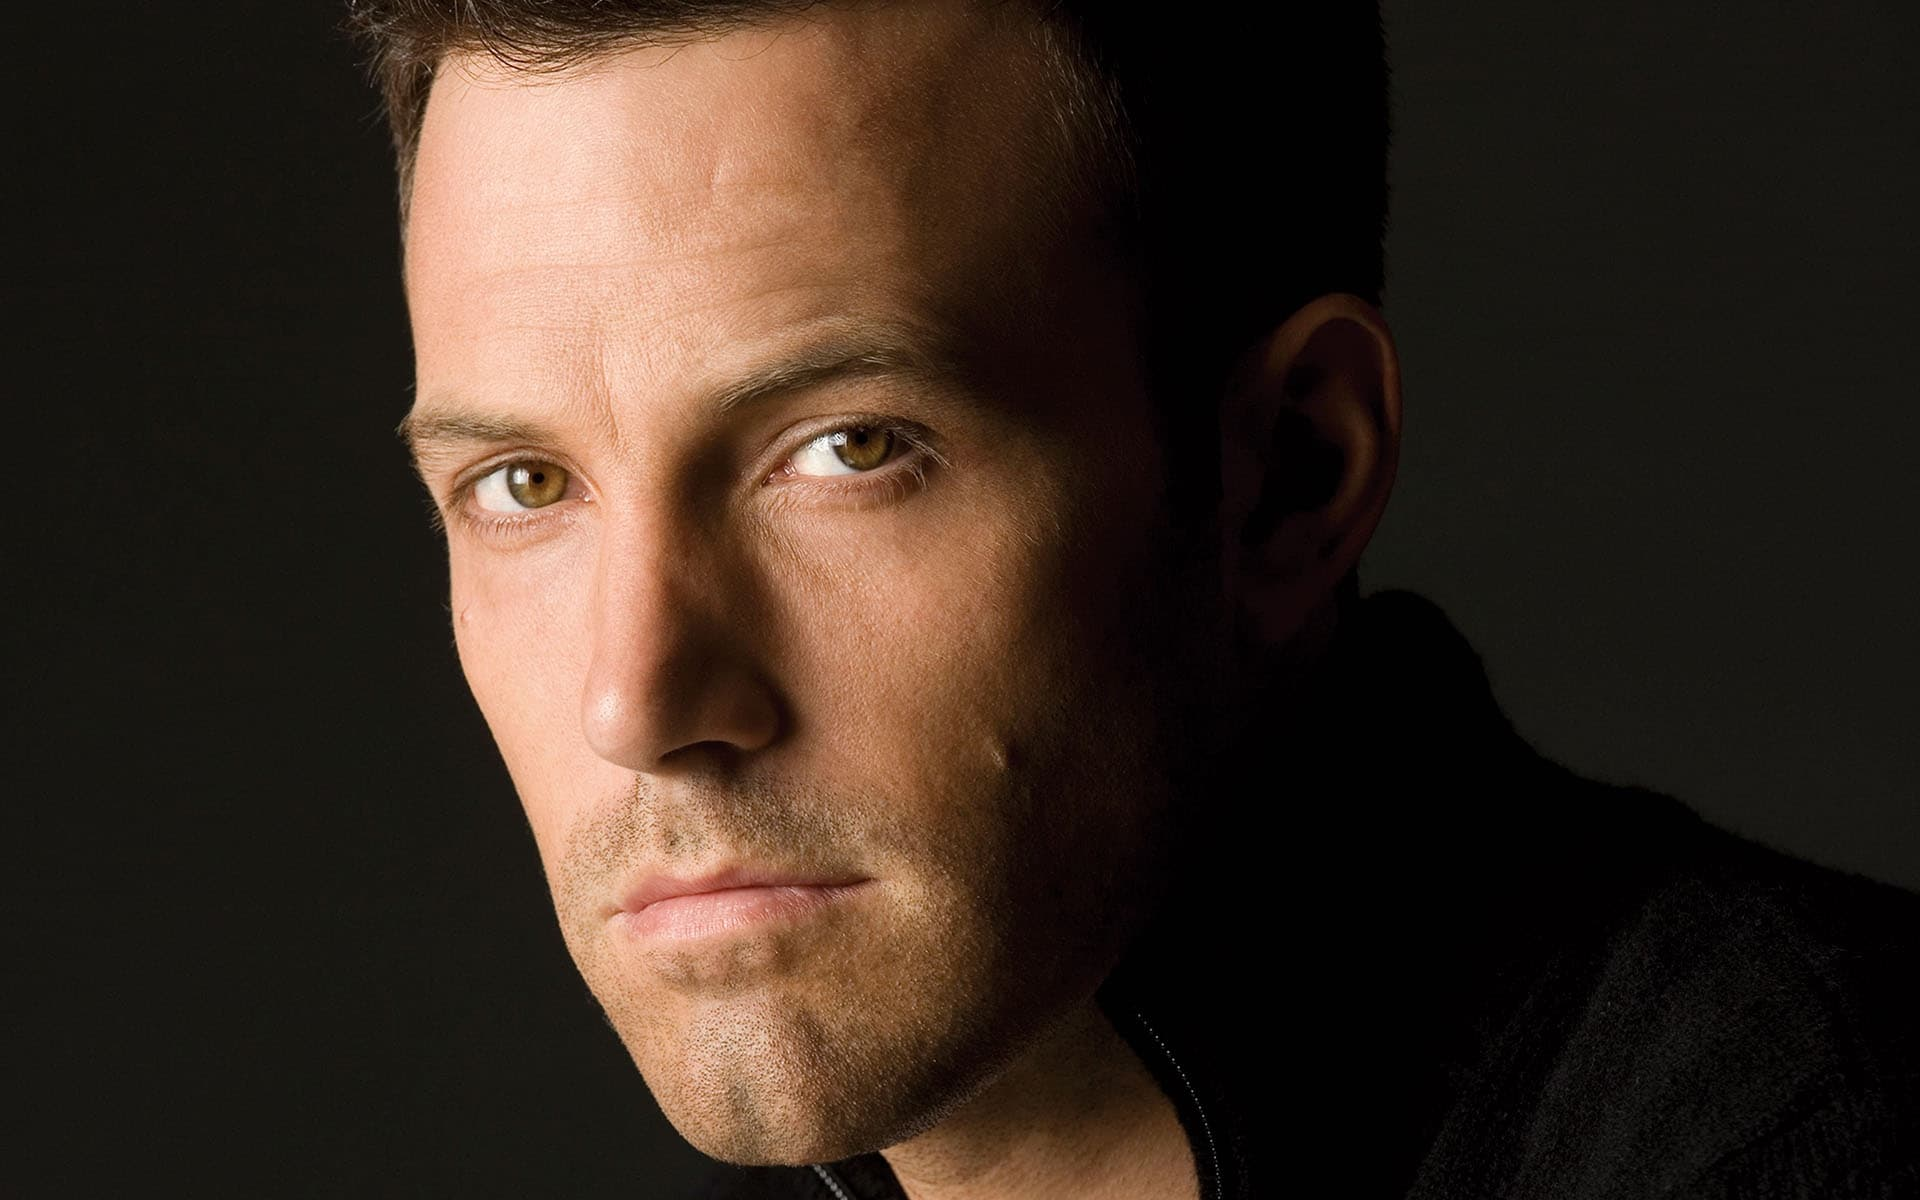 wallpapers ben affleck eyes face image hd